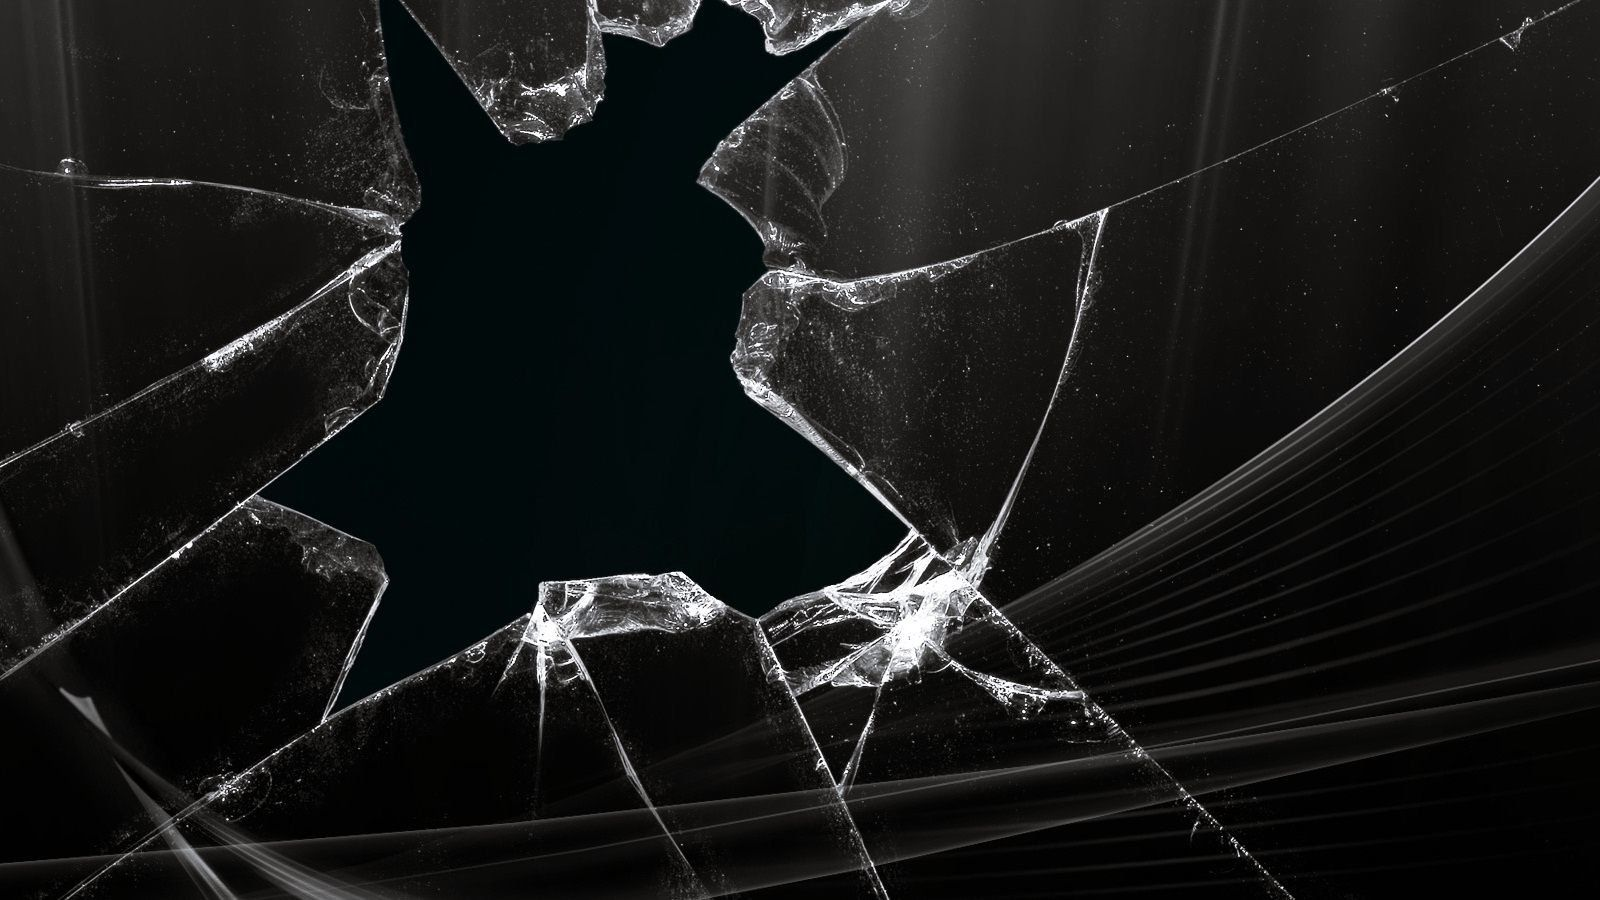 Broken Screen Wallpaper Chromebook - Best Wallpaper HD